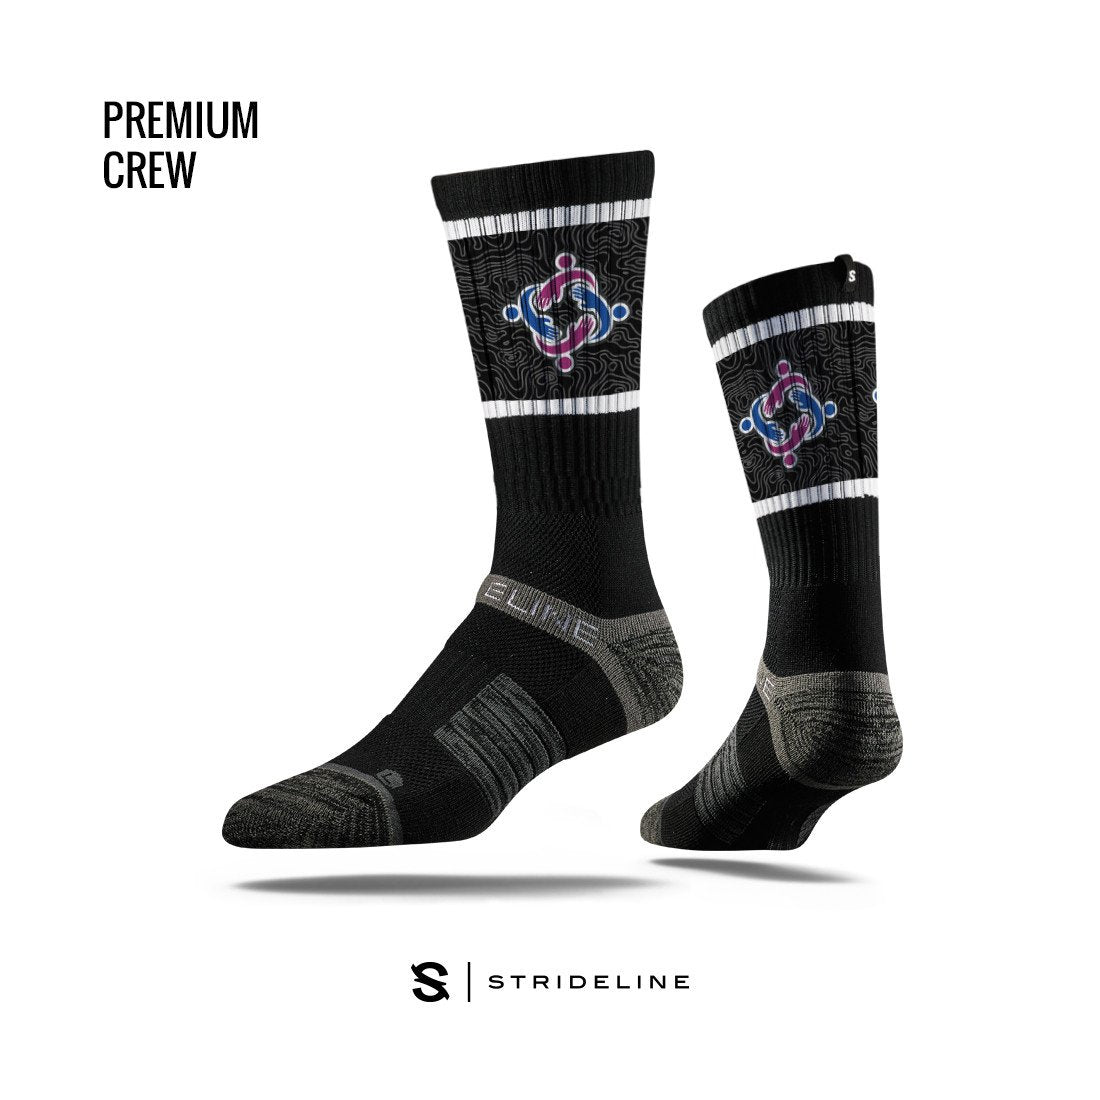 Benton/Franklin Juvenile Justice Center Apparel | Socks | Premium